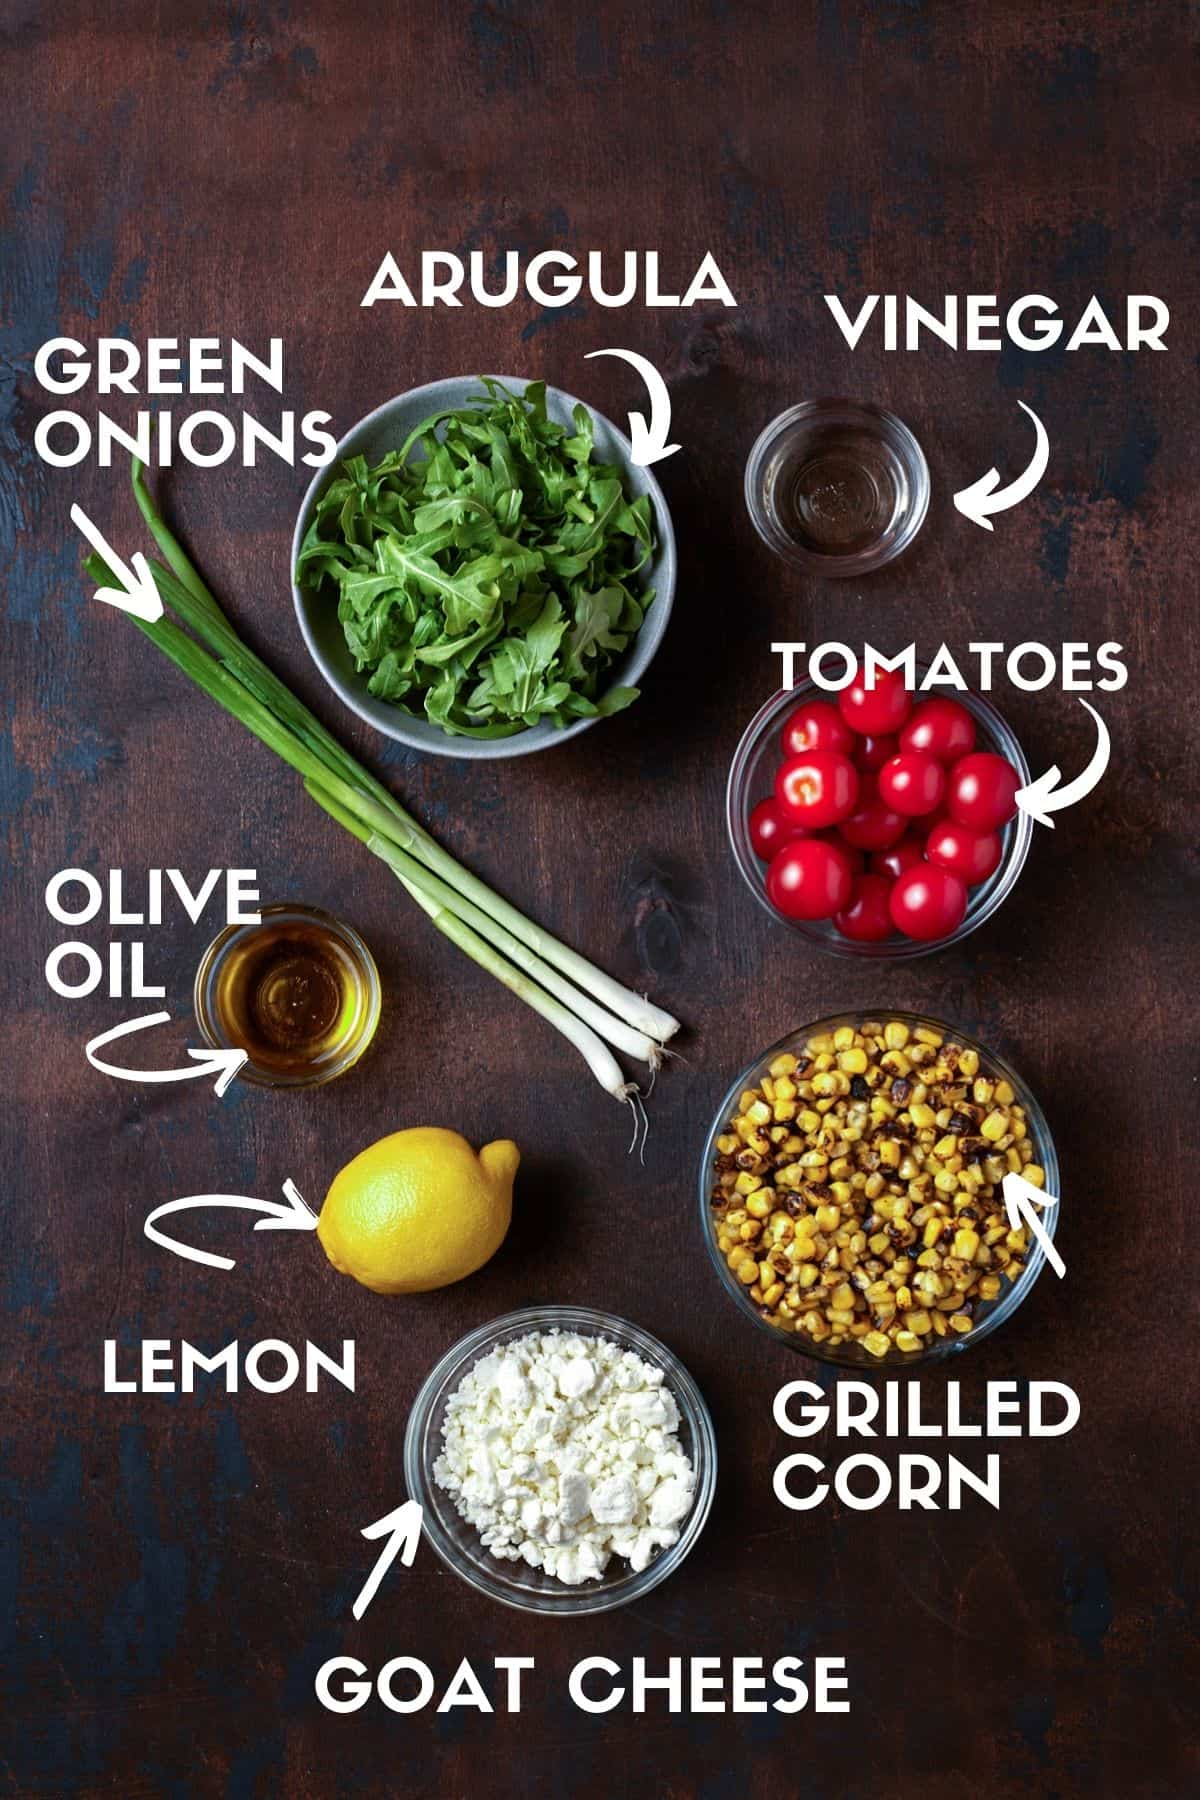 Ingredients for arugula, corn and goat cheese salad.